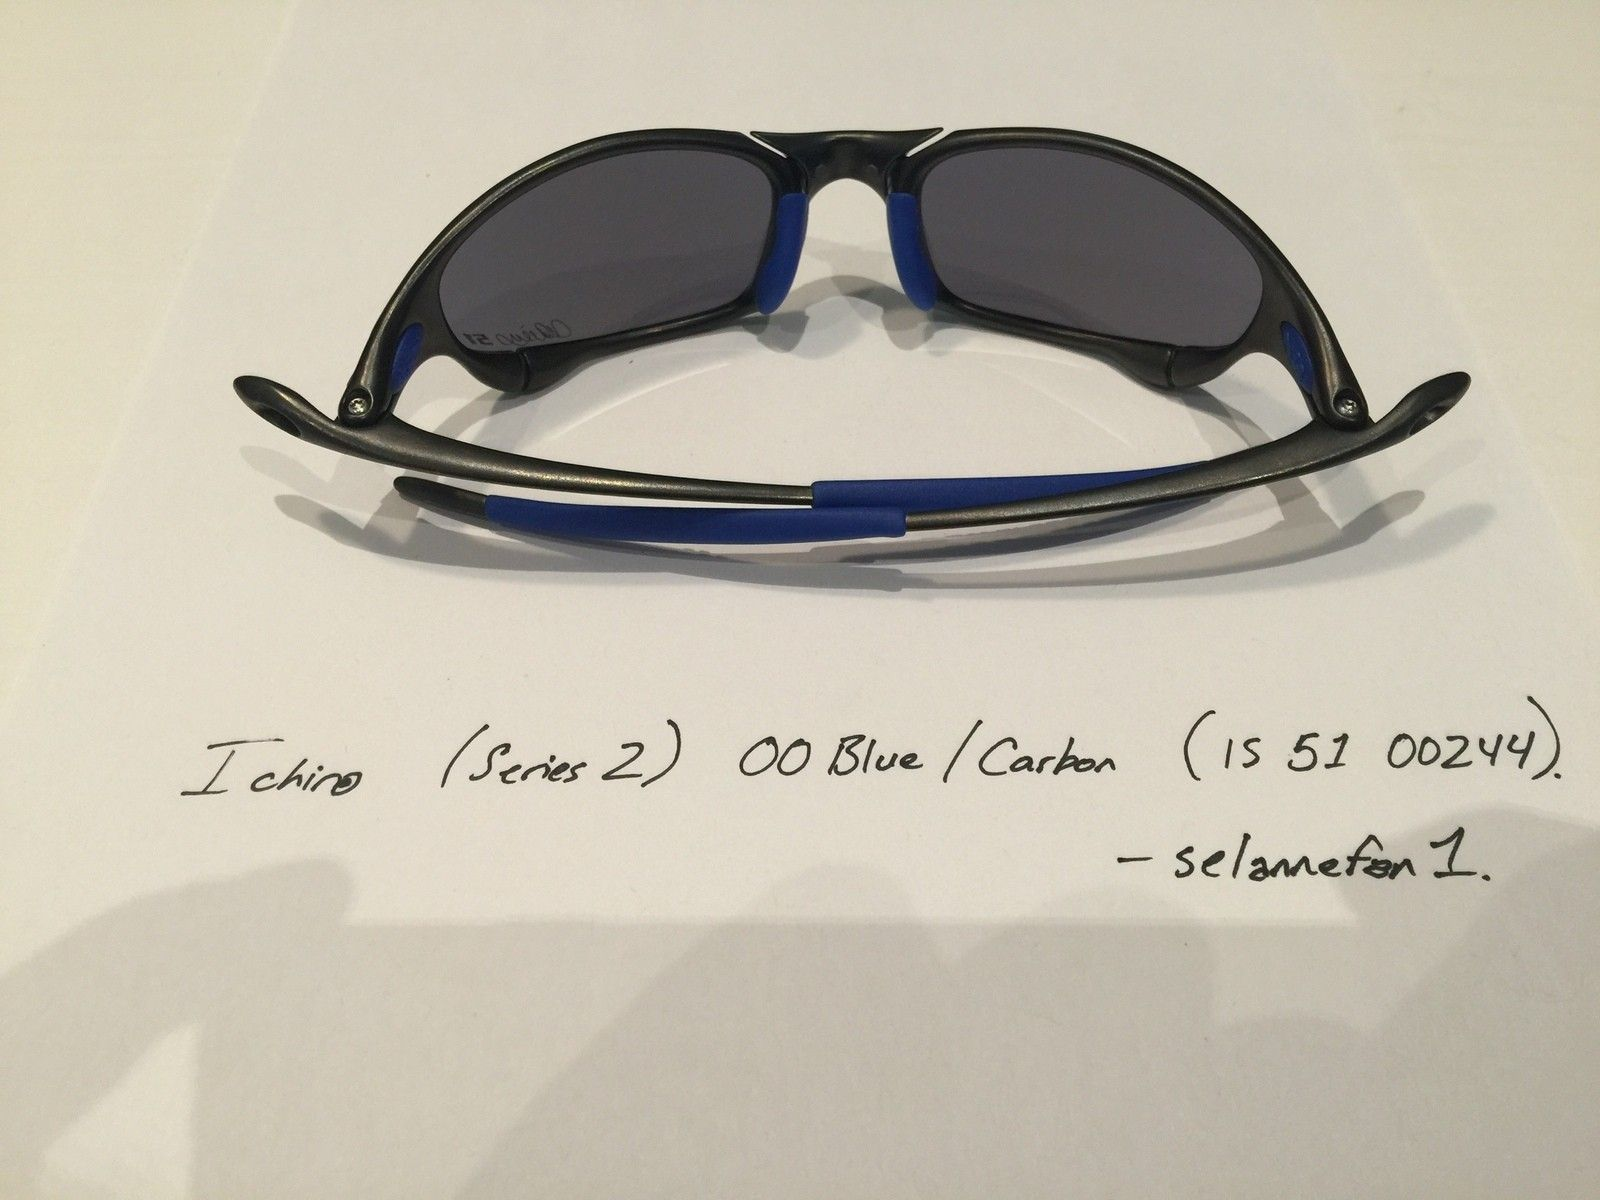 Ichiro OO Blue / Carbon Juliets (with Serial and Box) - IMG_3832.JPG